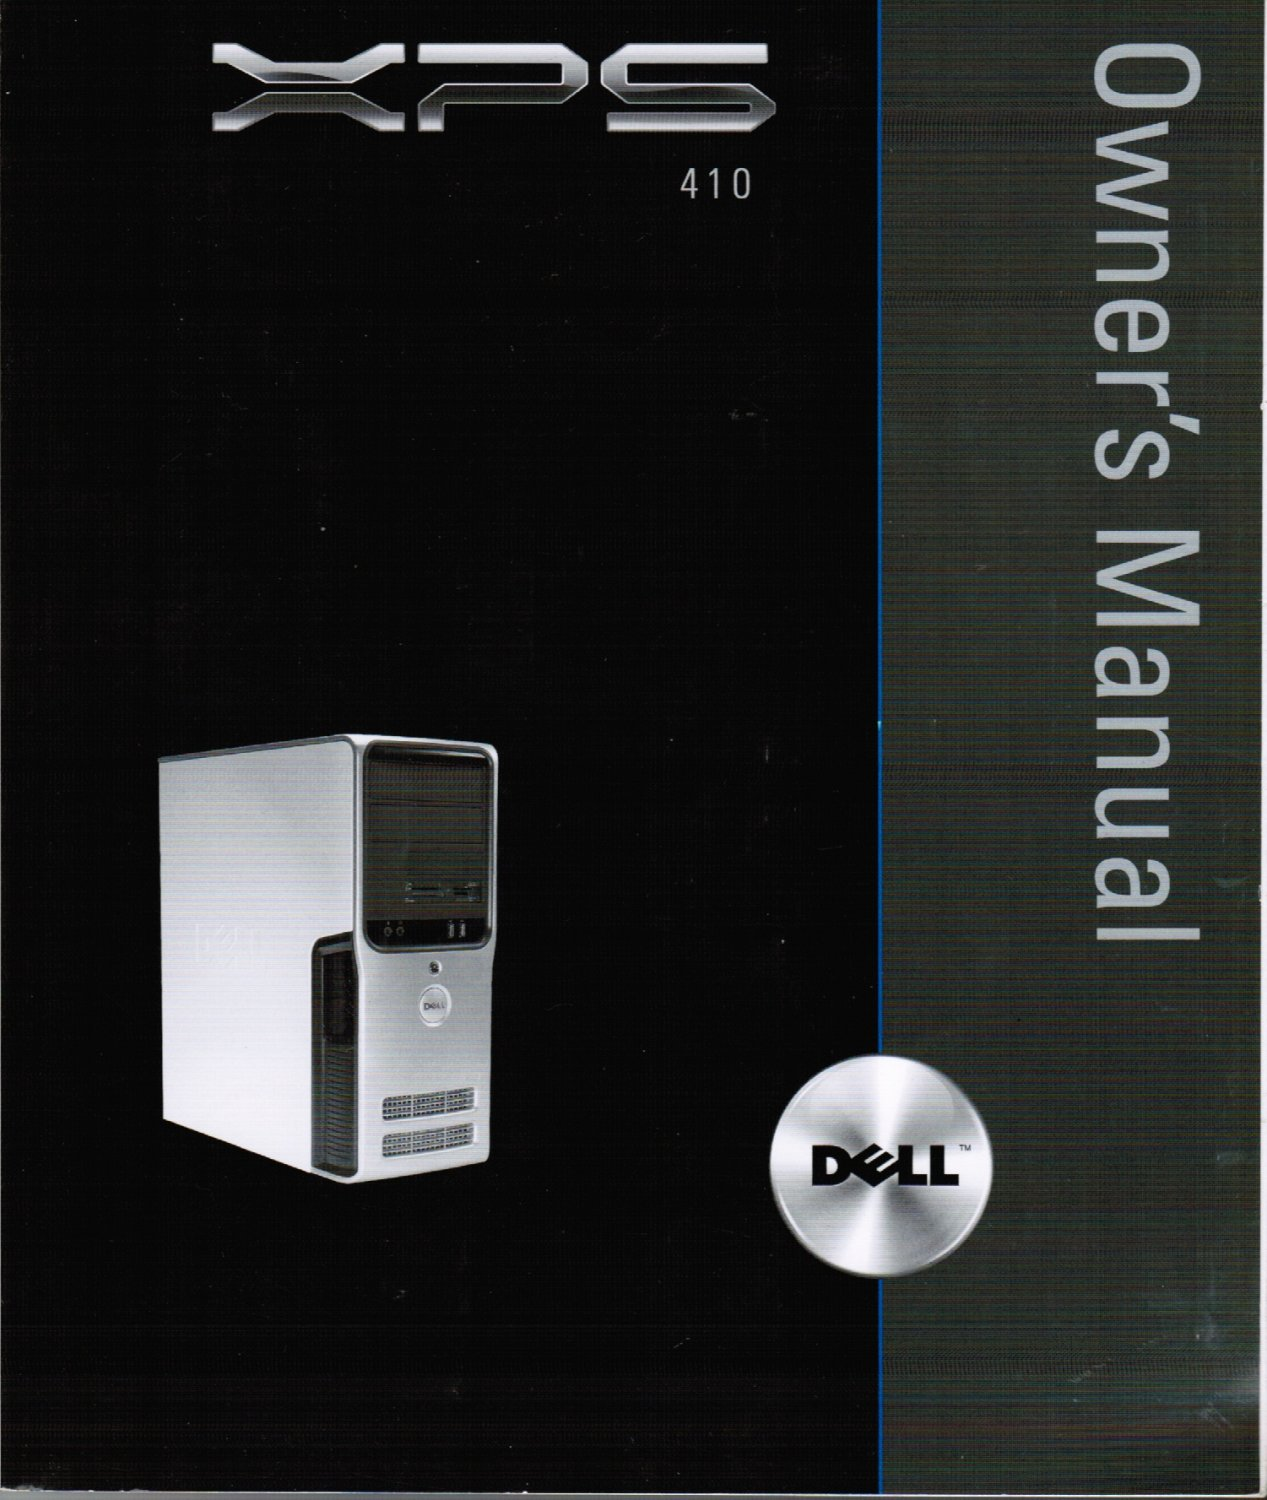 Dell XPS 410 Owner's Manual